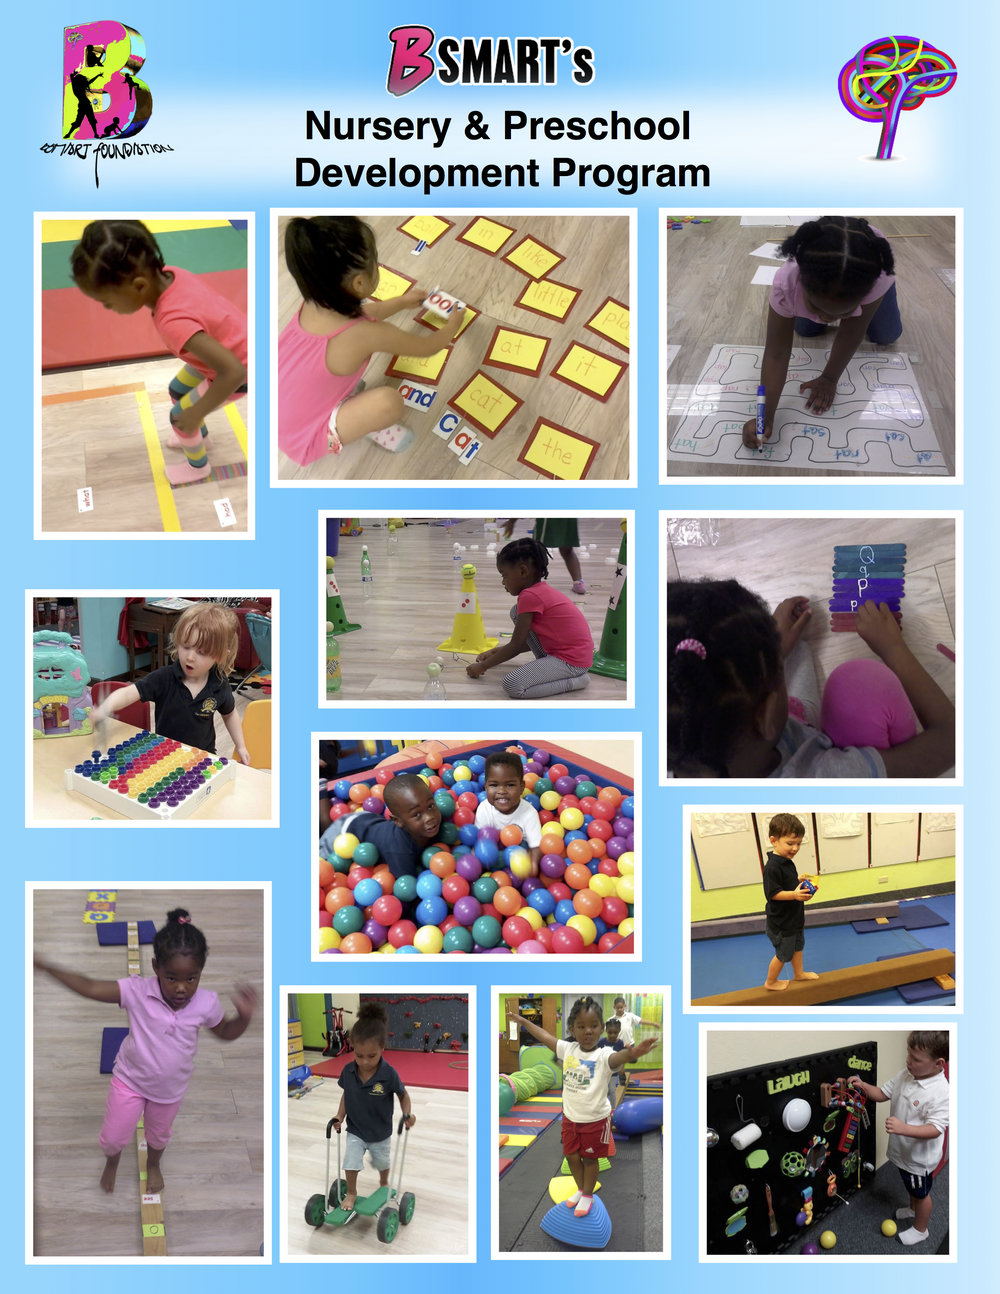 Nursery & Preschool programming Collage_2017.jpg